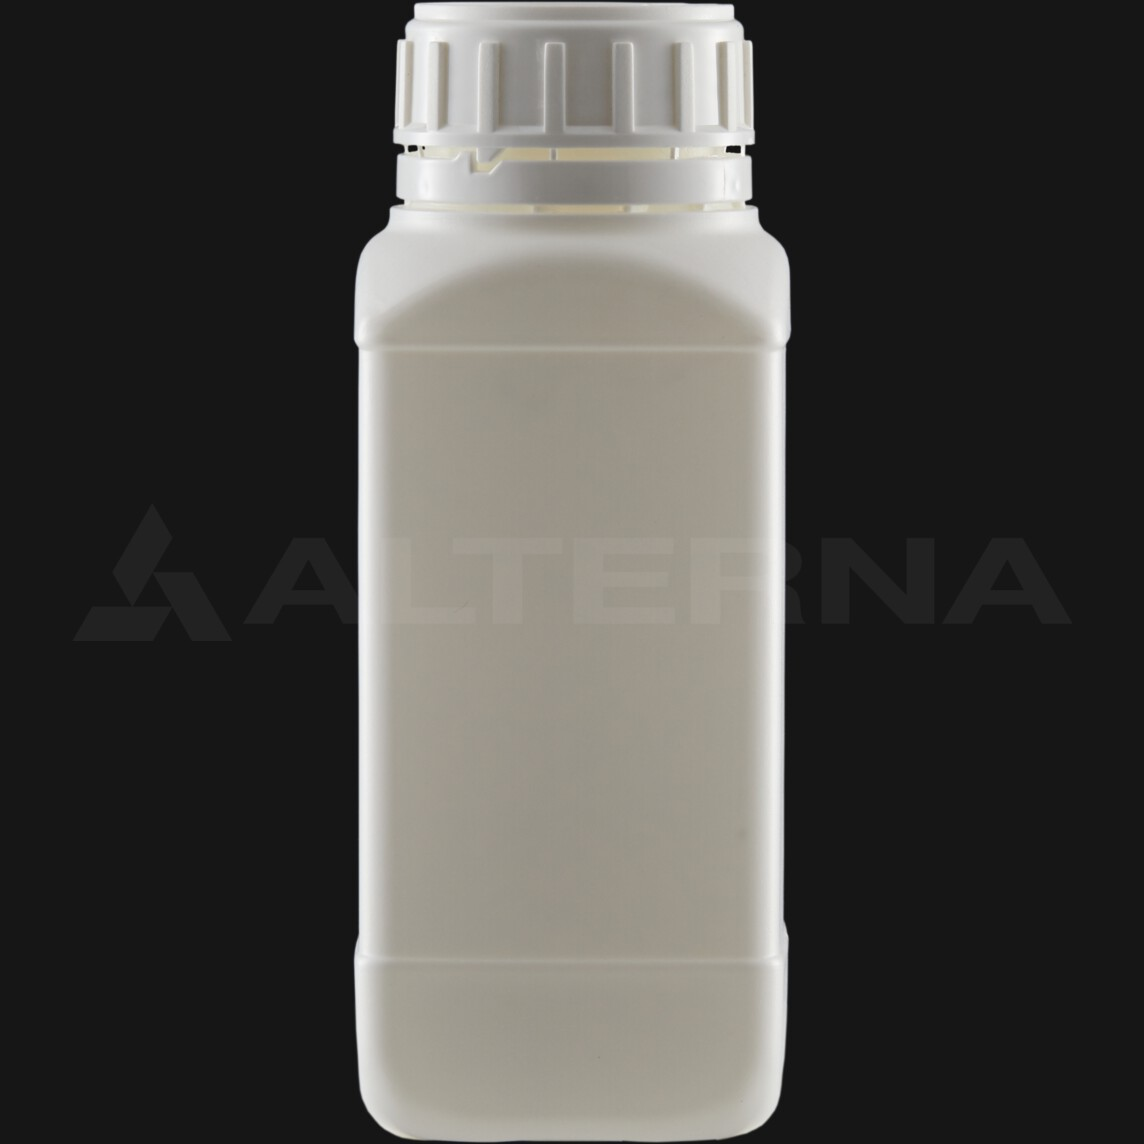 500 ml HDPE Square Bottle with 50 mm Foam Seal Secure Cap